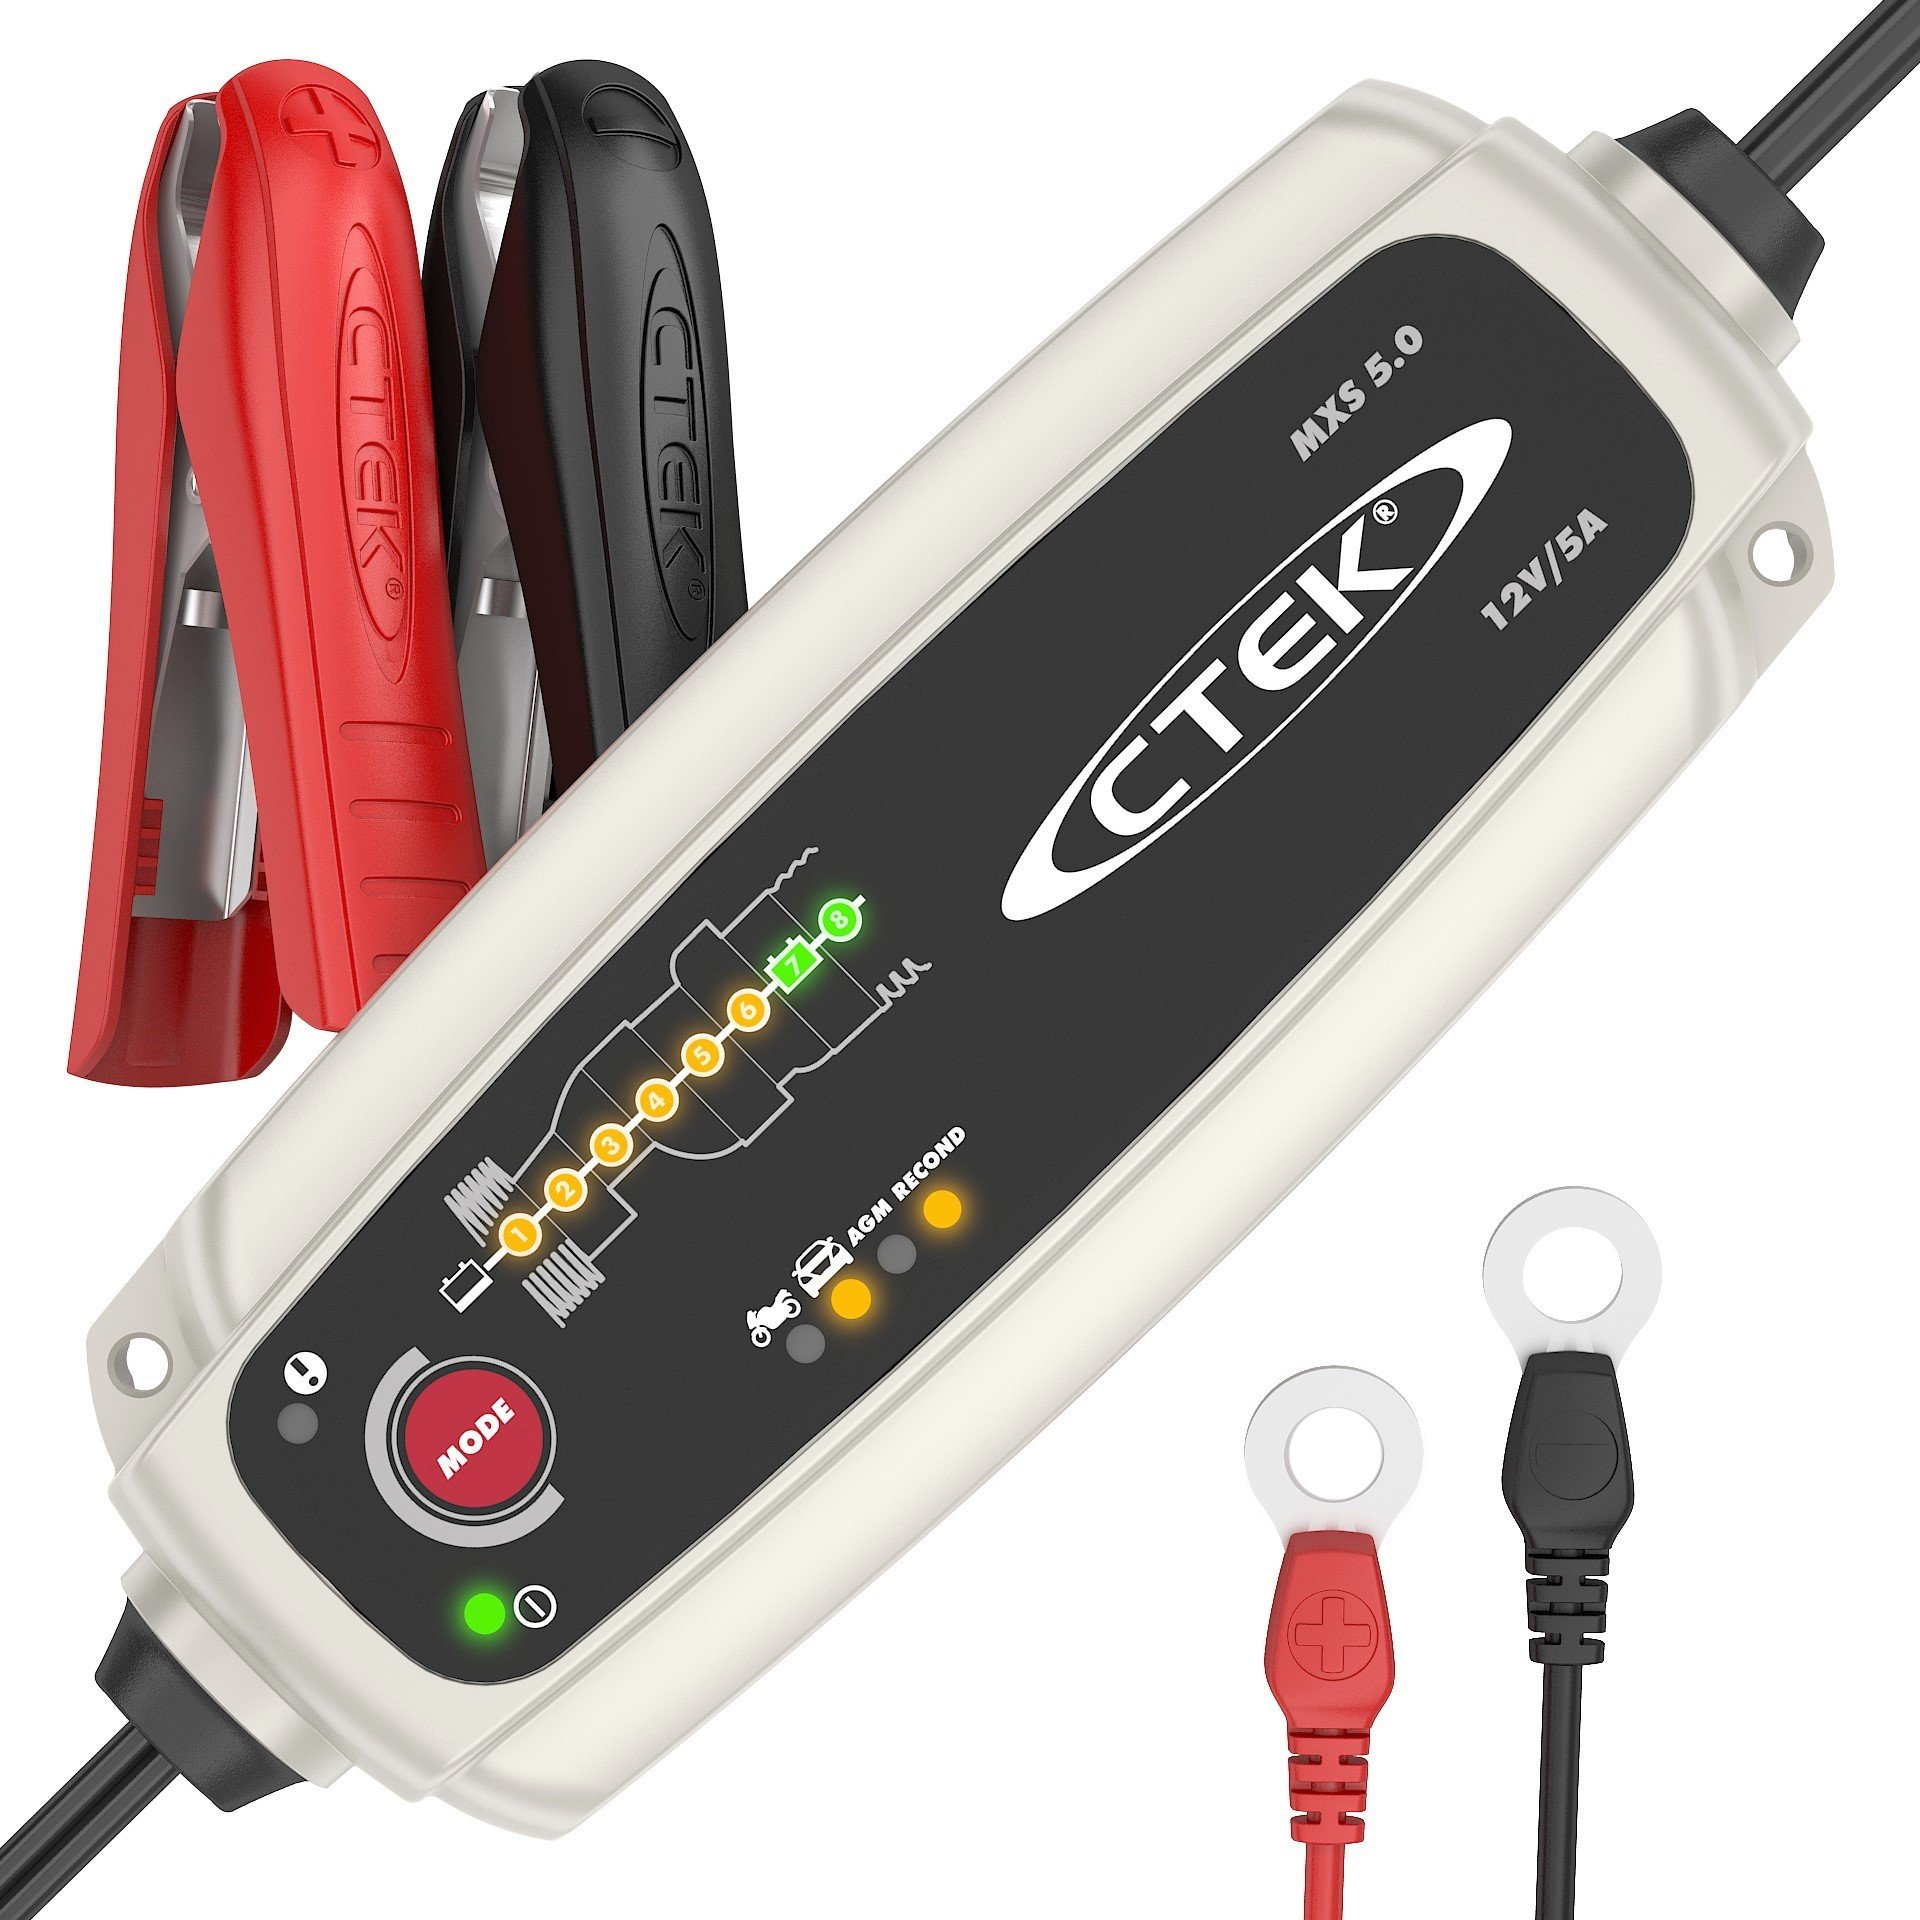 CTEK MXS 5.0 Battery Charger with Automatic Temperature Compensation